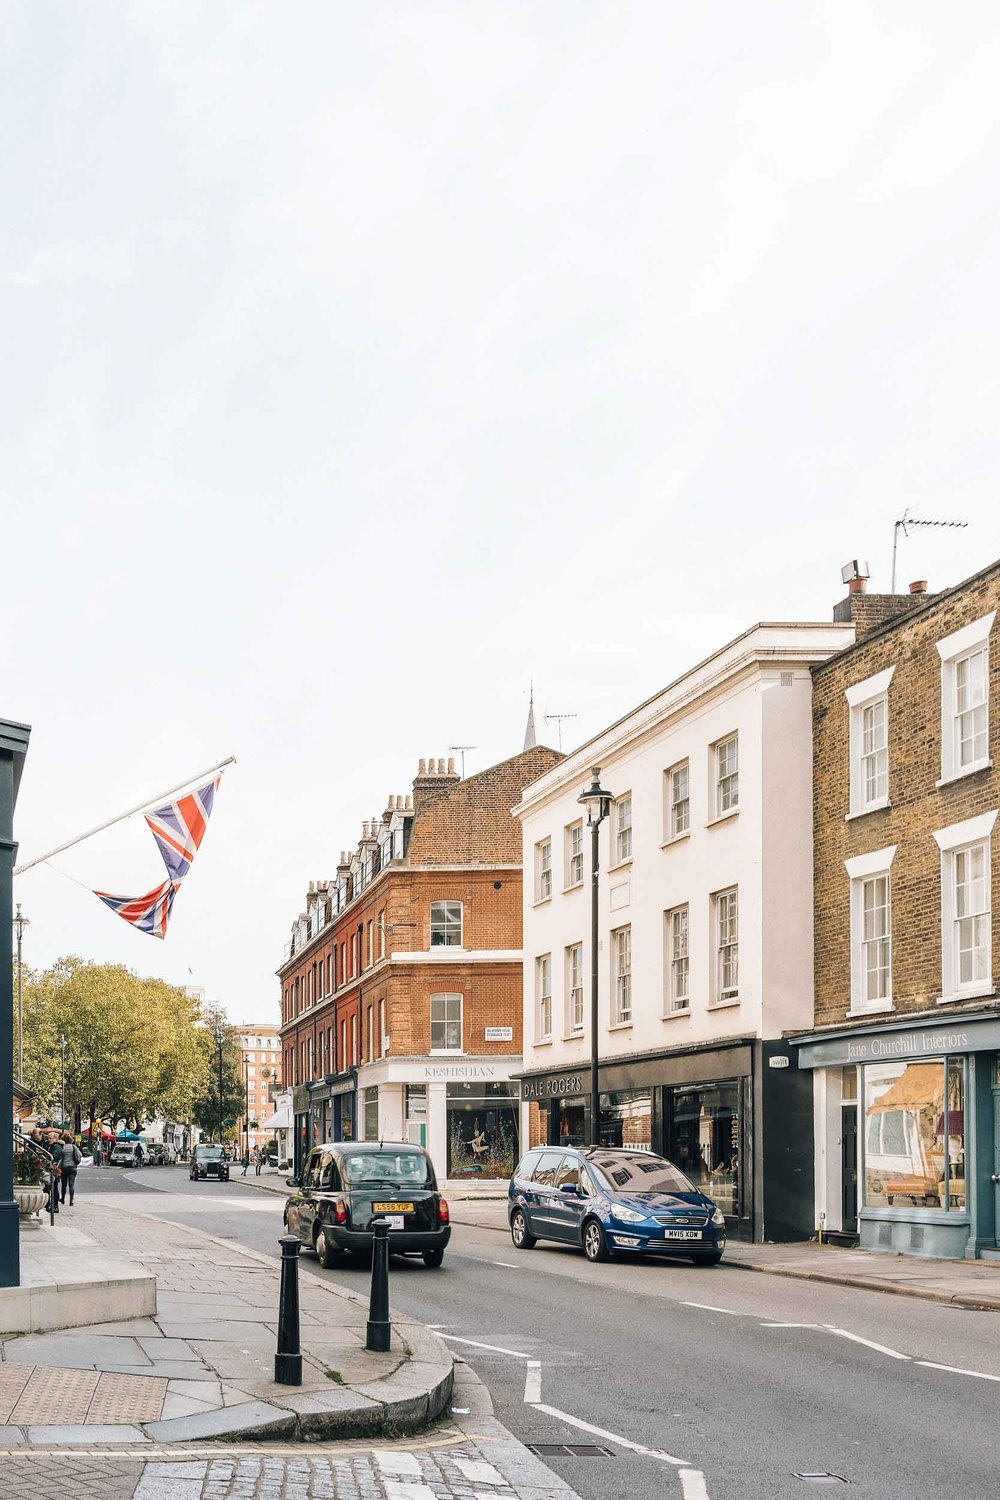 What to see in London in 2 days: the neighborhood of Chelsea